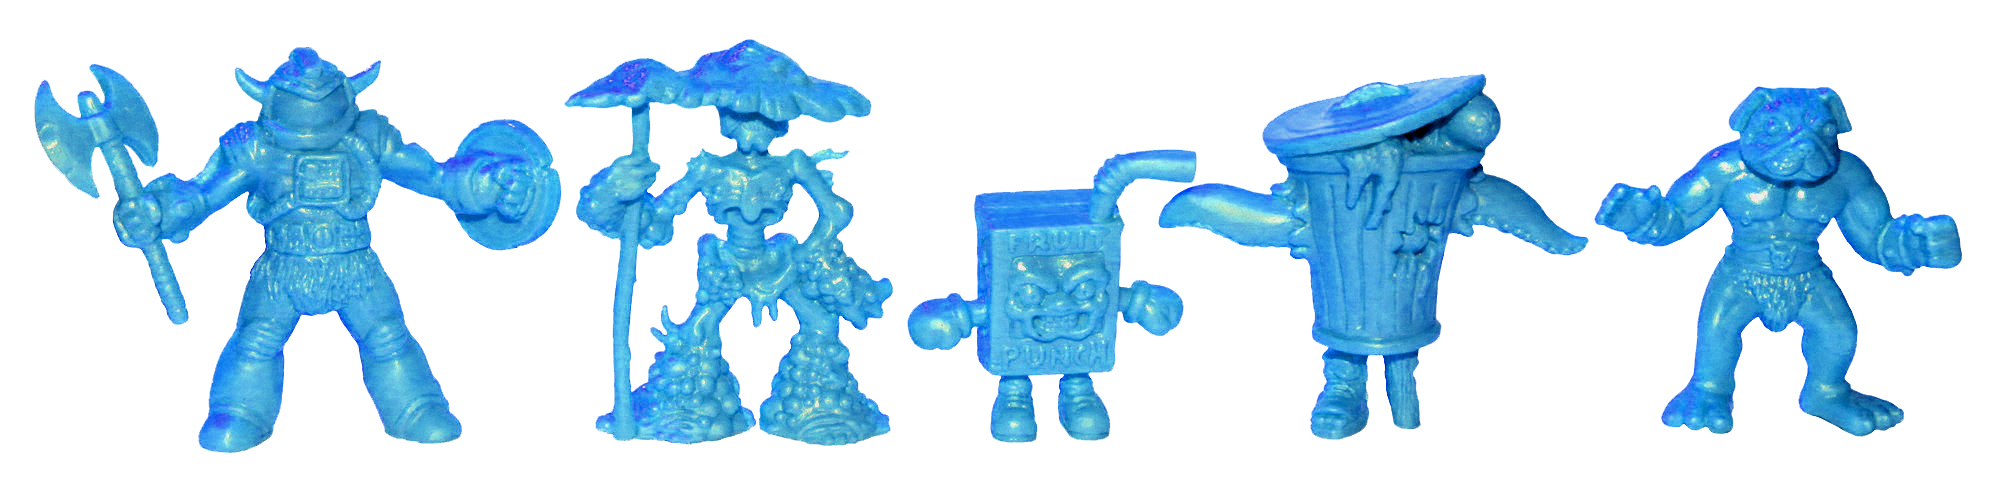 OMFG Series 3 Rotofugi Blue